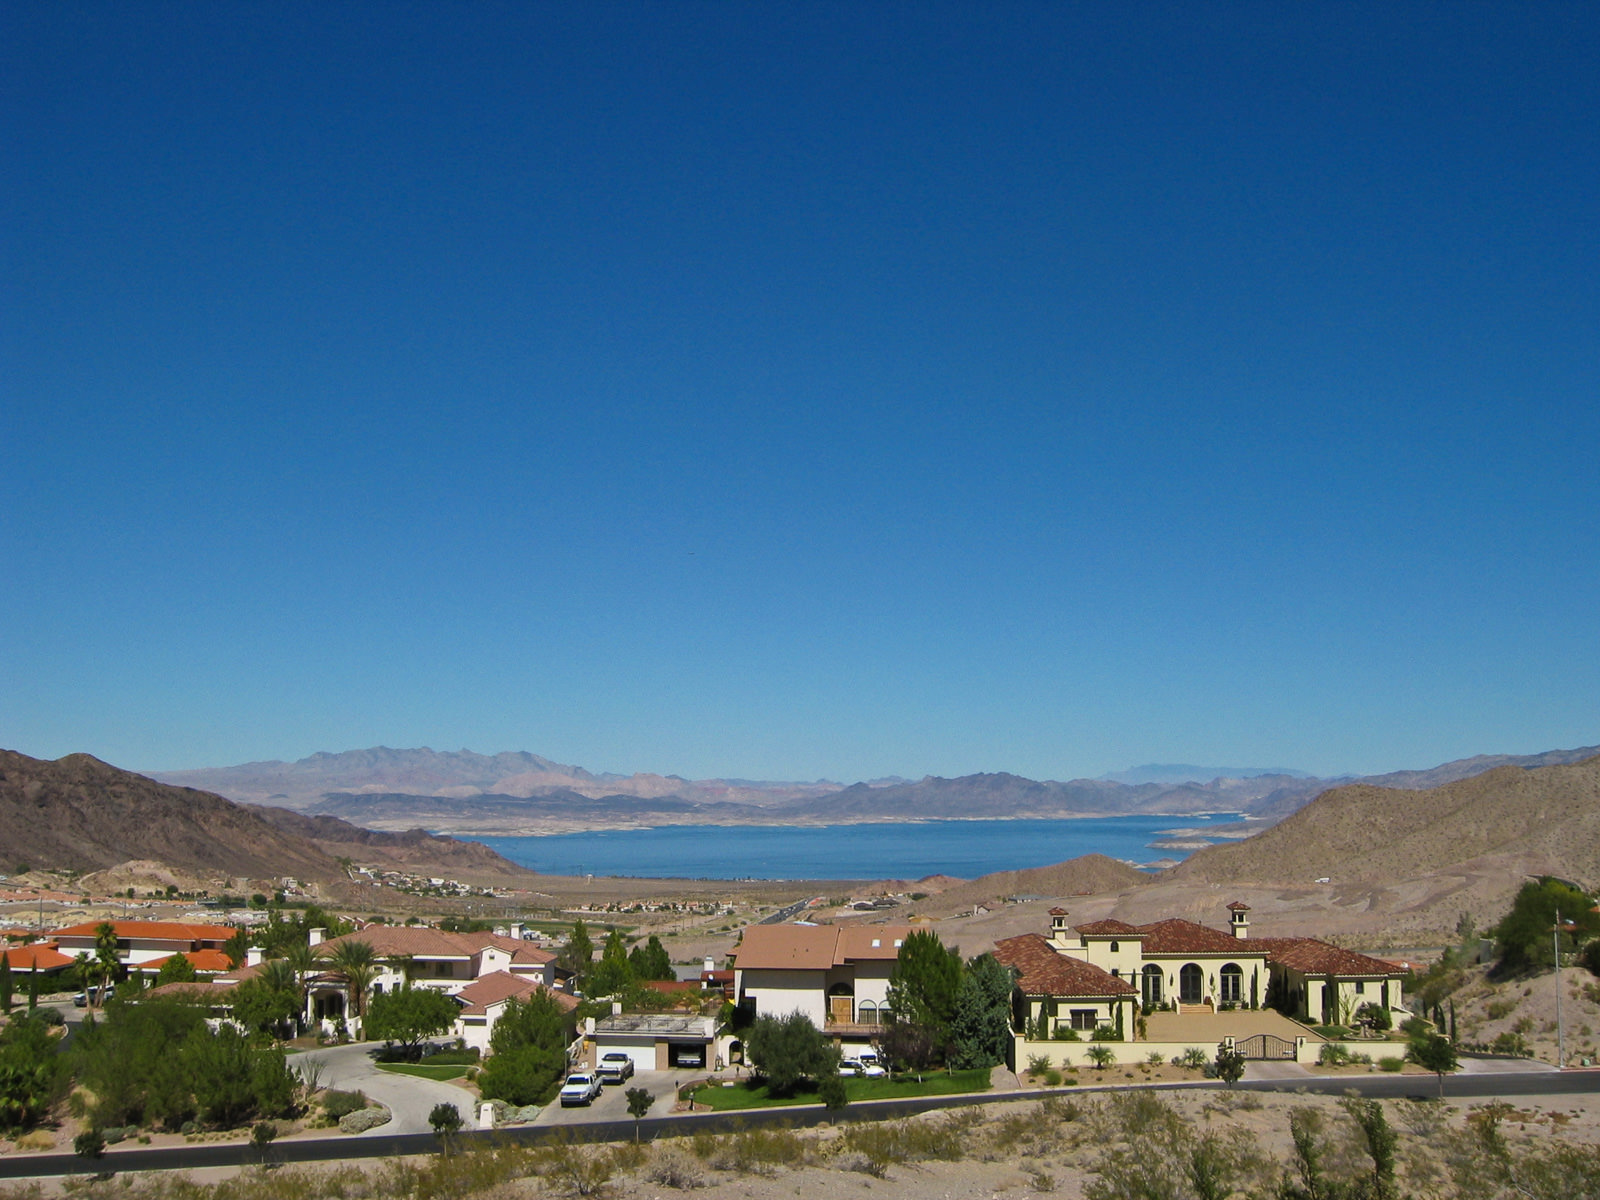 Near Lake Meade